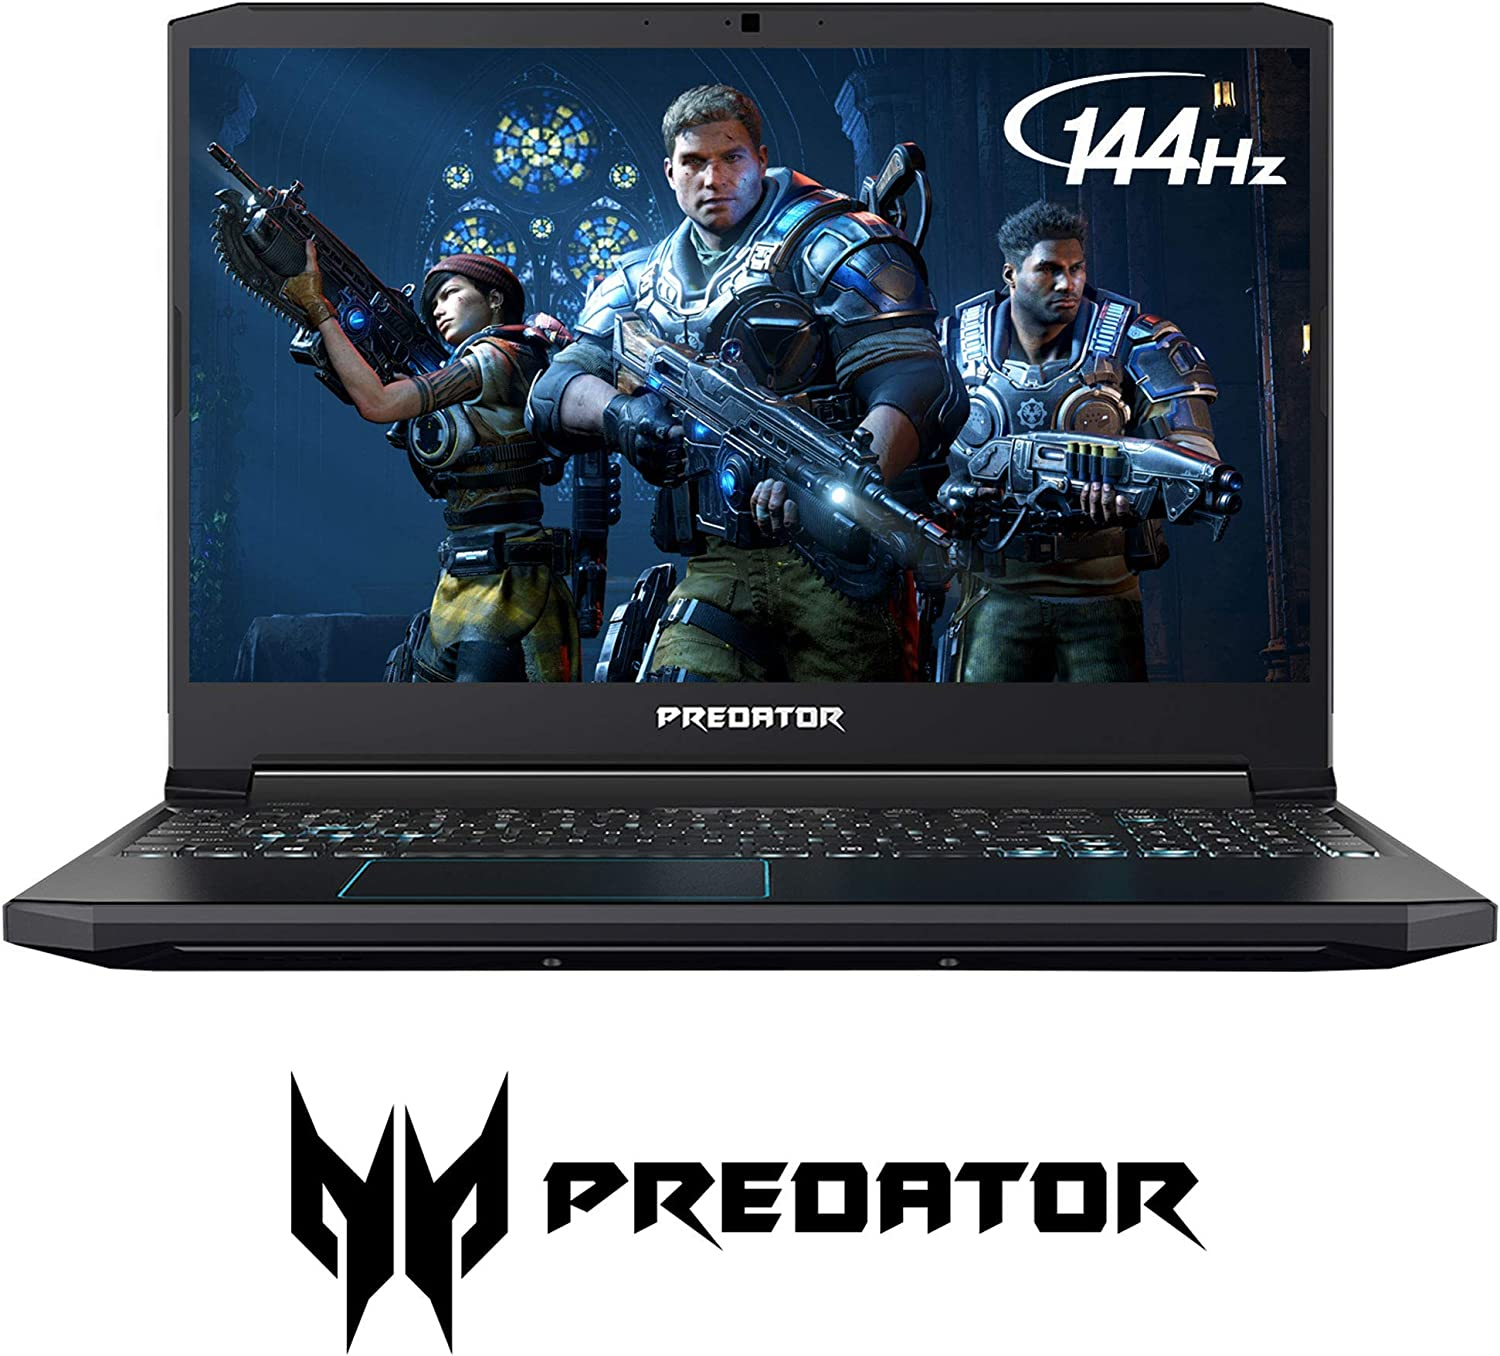 Acer Predator Helios 300 Gaming Laptop PC, 15.6 inches Full HD 144Hz 3ms IPS Display, Intel i7-9750H, GTX 1660 Ti 6GB, 16GB DDR4, 256GB PCIe NVMe SSD, Backlit Keyboard, PH315 (Renewed)